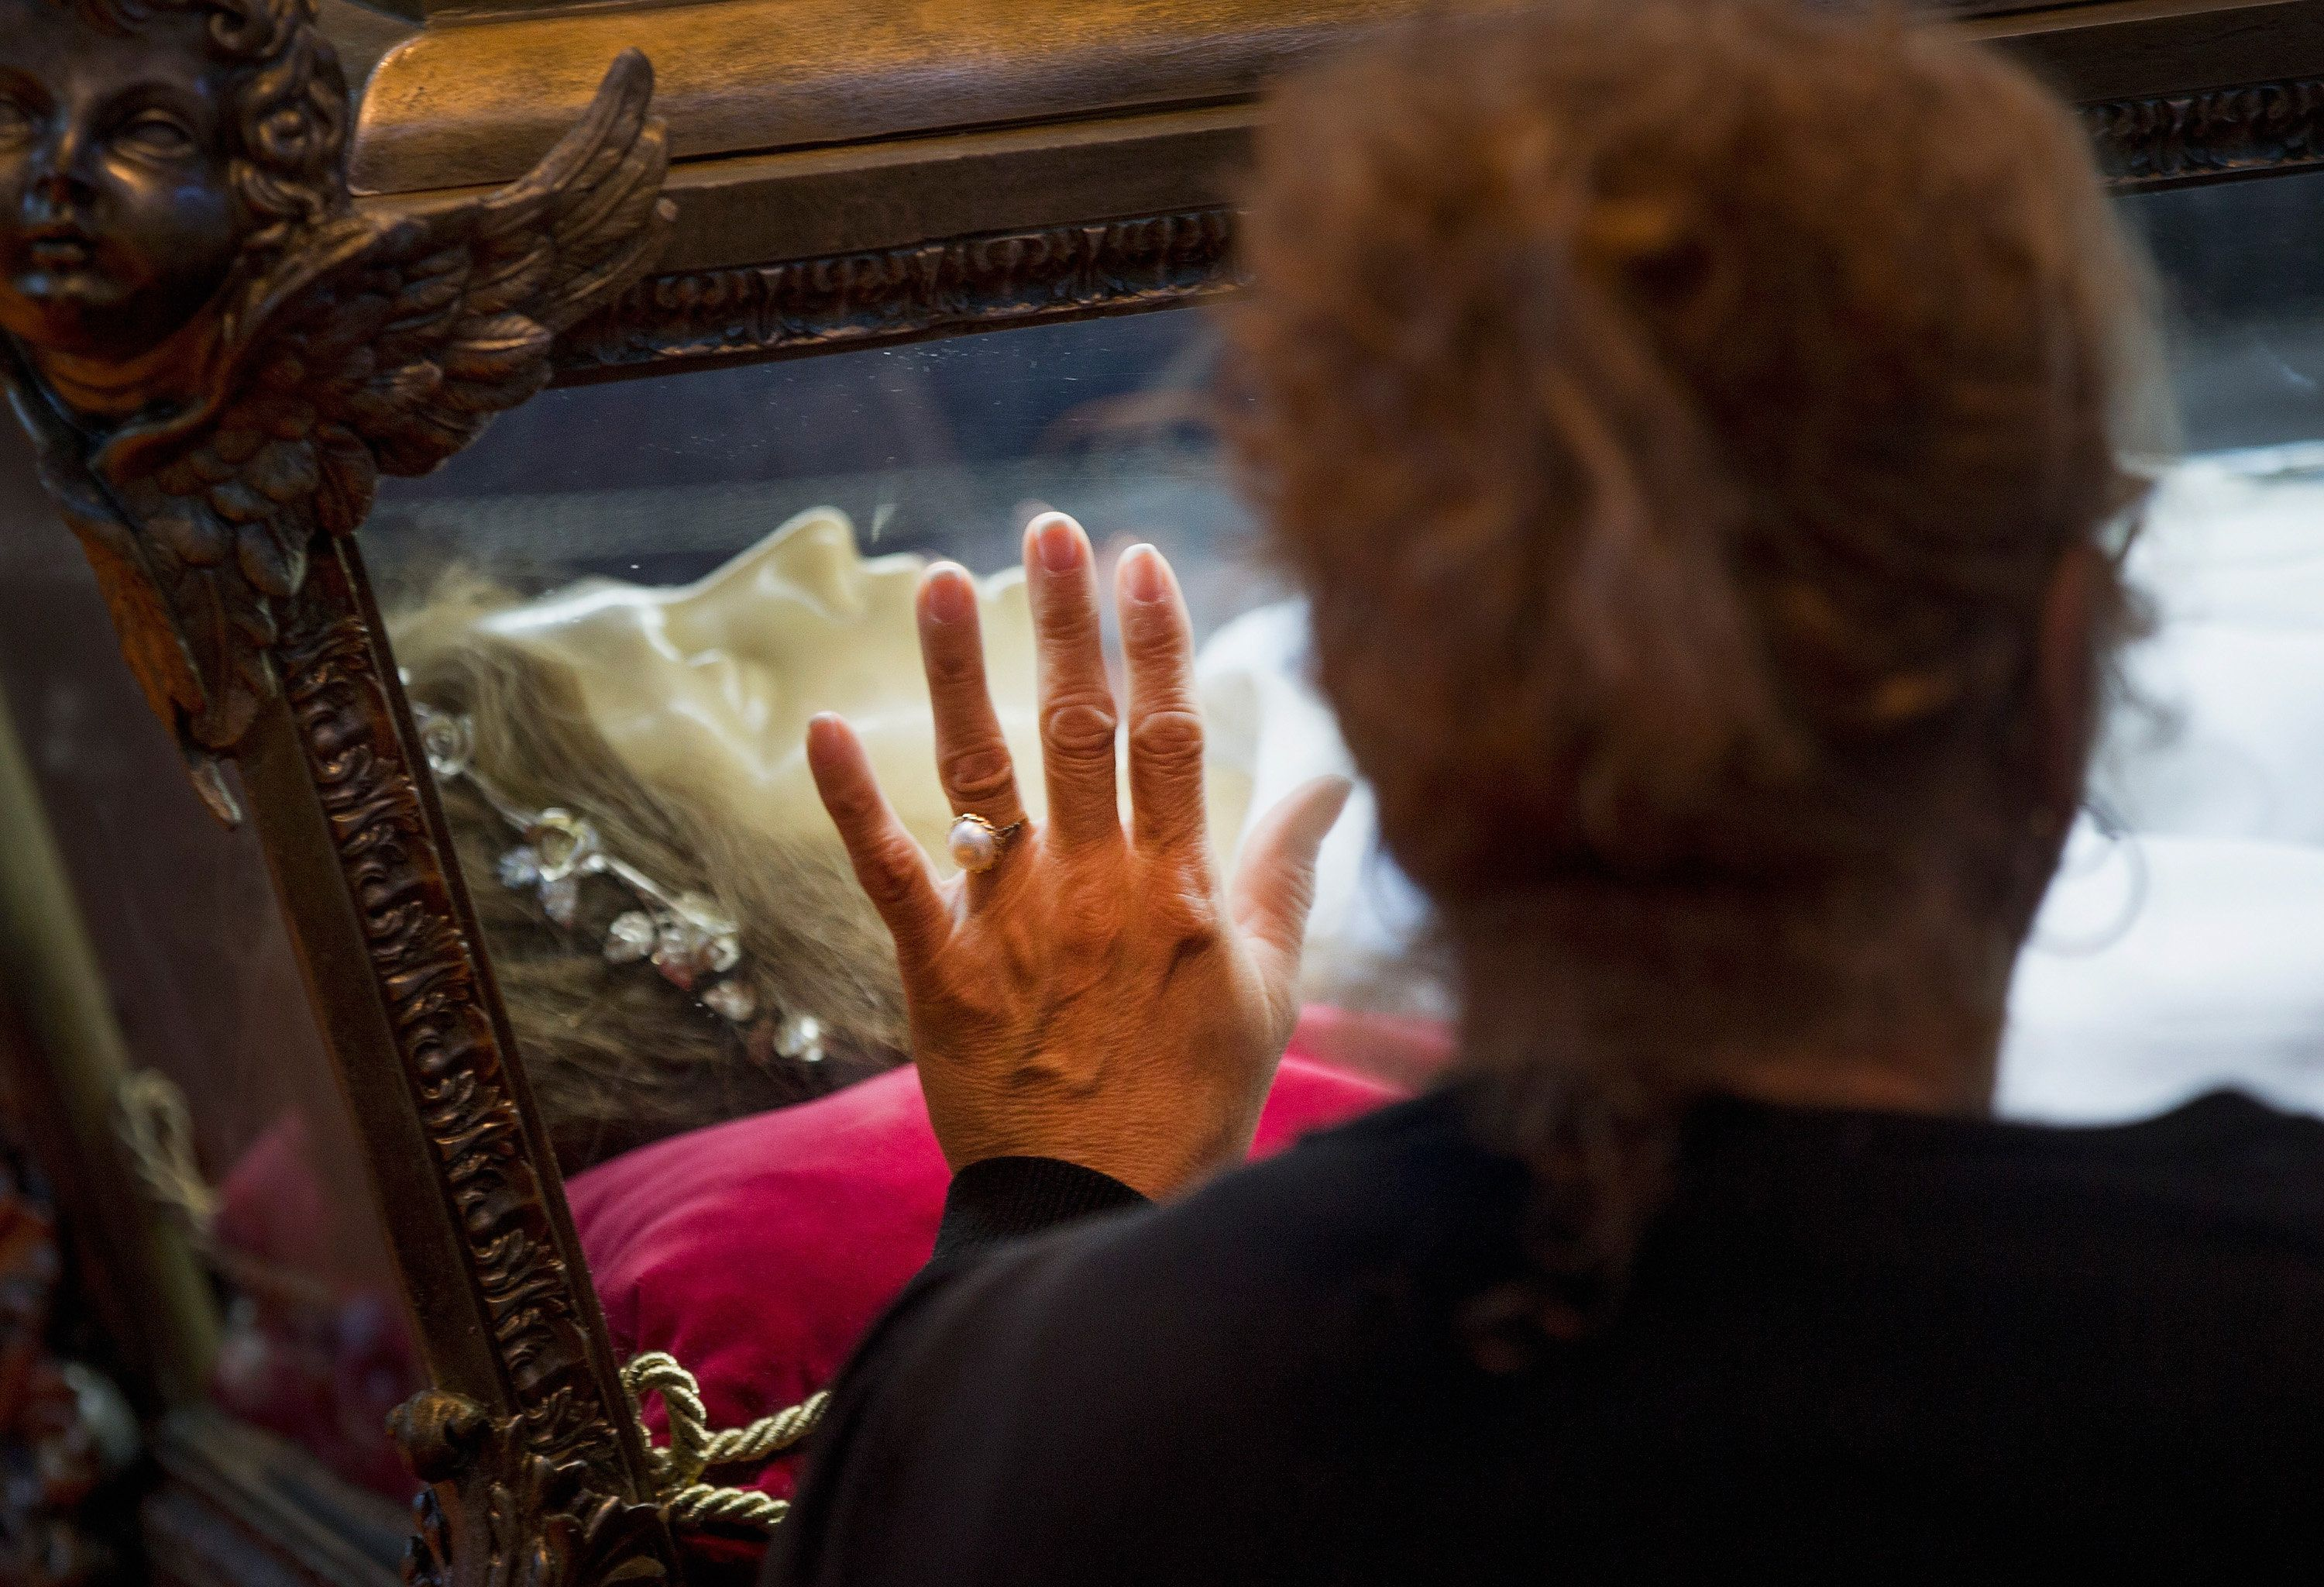 ORLAND PARK, IL - OCTOBER 14: Visitors pray over the remains of Saint Maria Goretti, are displayed at Saint Francis Assisi Church on October 14, 2015 in Orland Park, Illinois. Goretti, the youngest canonized saint in the Catholic Church, was murdered during an attempted rape by Alessandro Serenelli in 1902. The nearly complete skeletal remains are encased in a wax statue and displayed in a glass-sided casket. The remains are on their first ever tour of the United States. (Photo by Scott Olson/Getty Images)